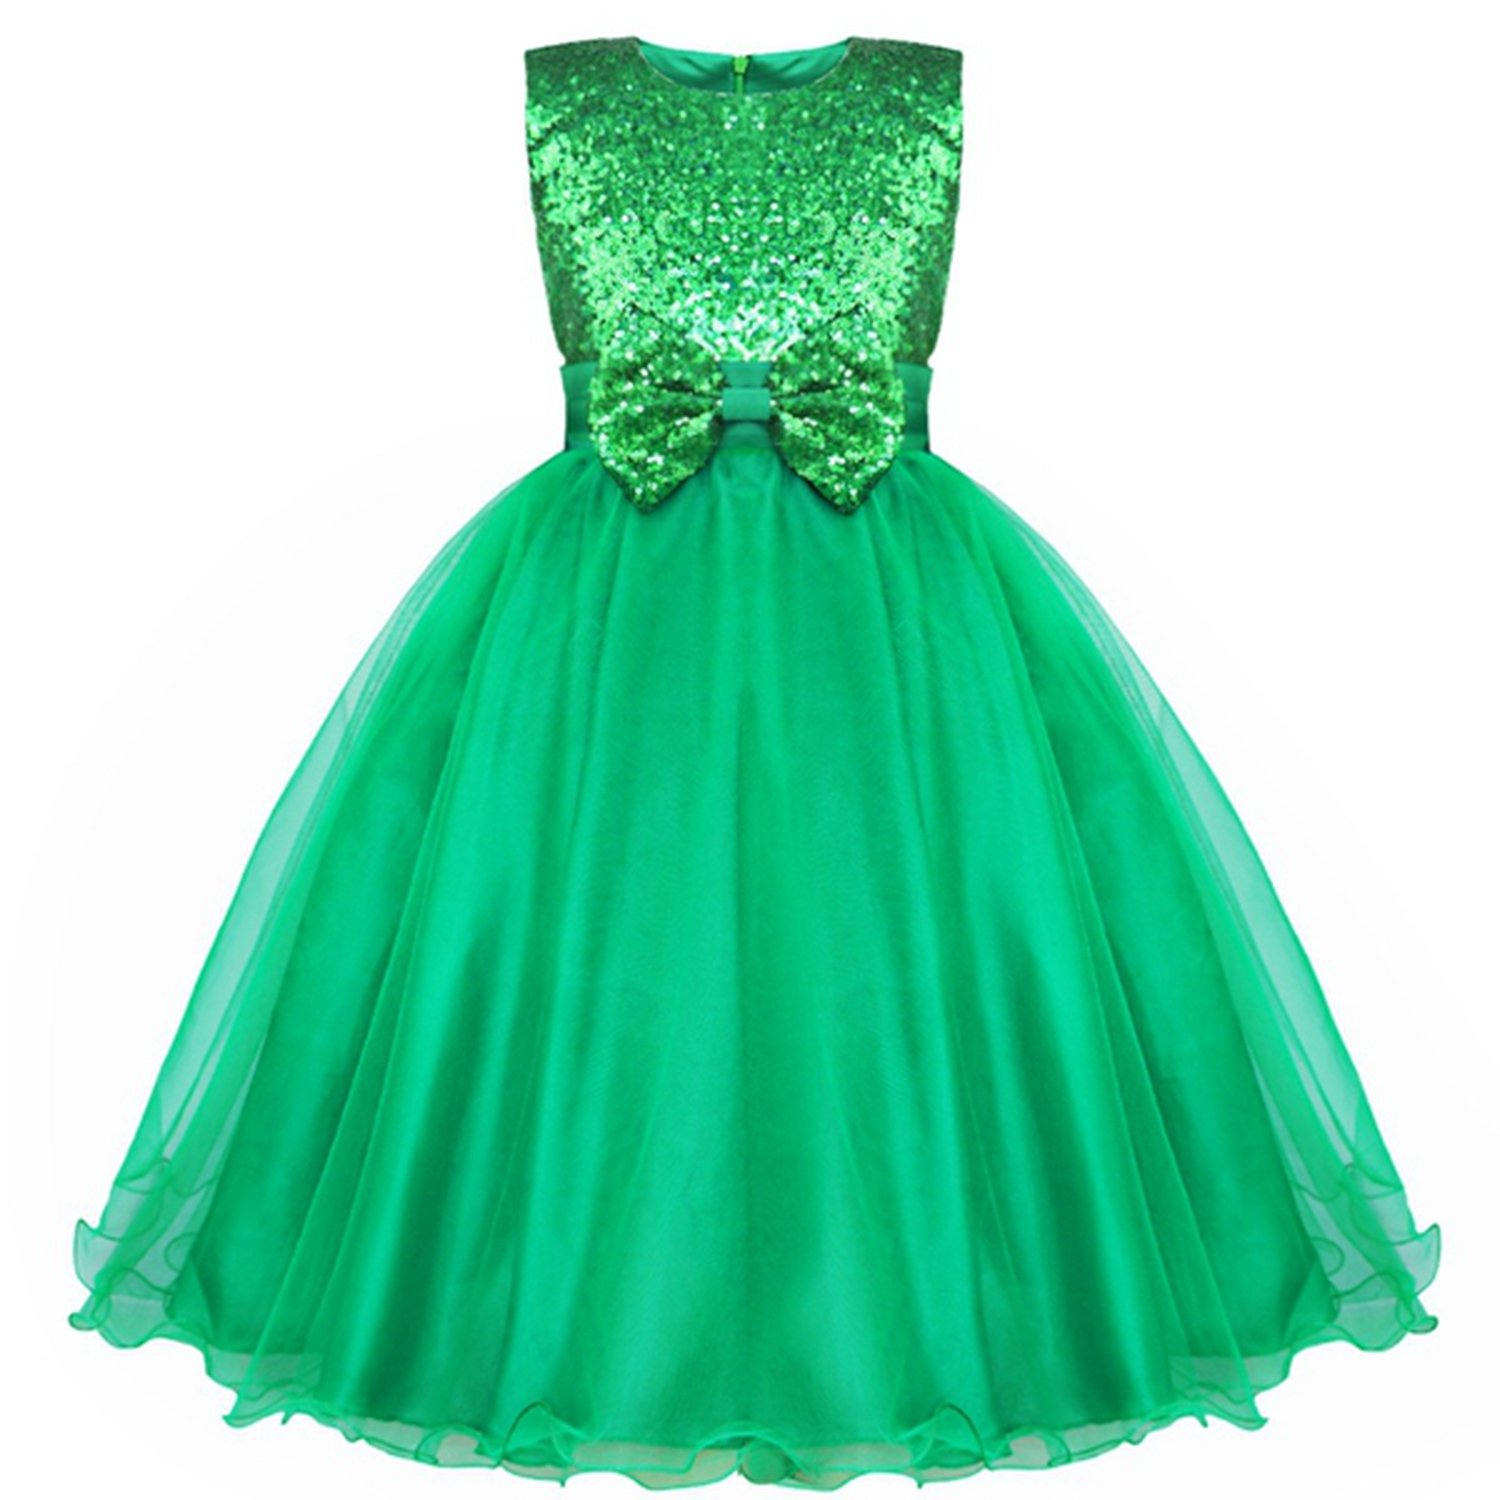 Flower Girl Dresses Bowknot Sequin Real Party Pageant Communion Dress Little Girls Kids Prom Gown for Wedding,Green,Child-12